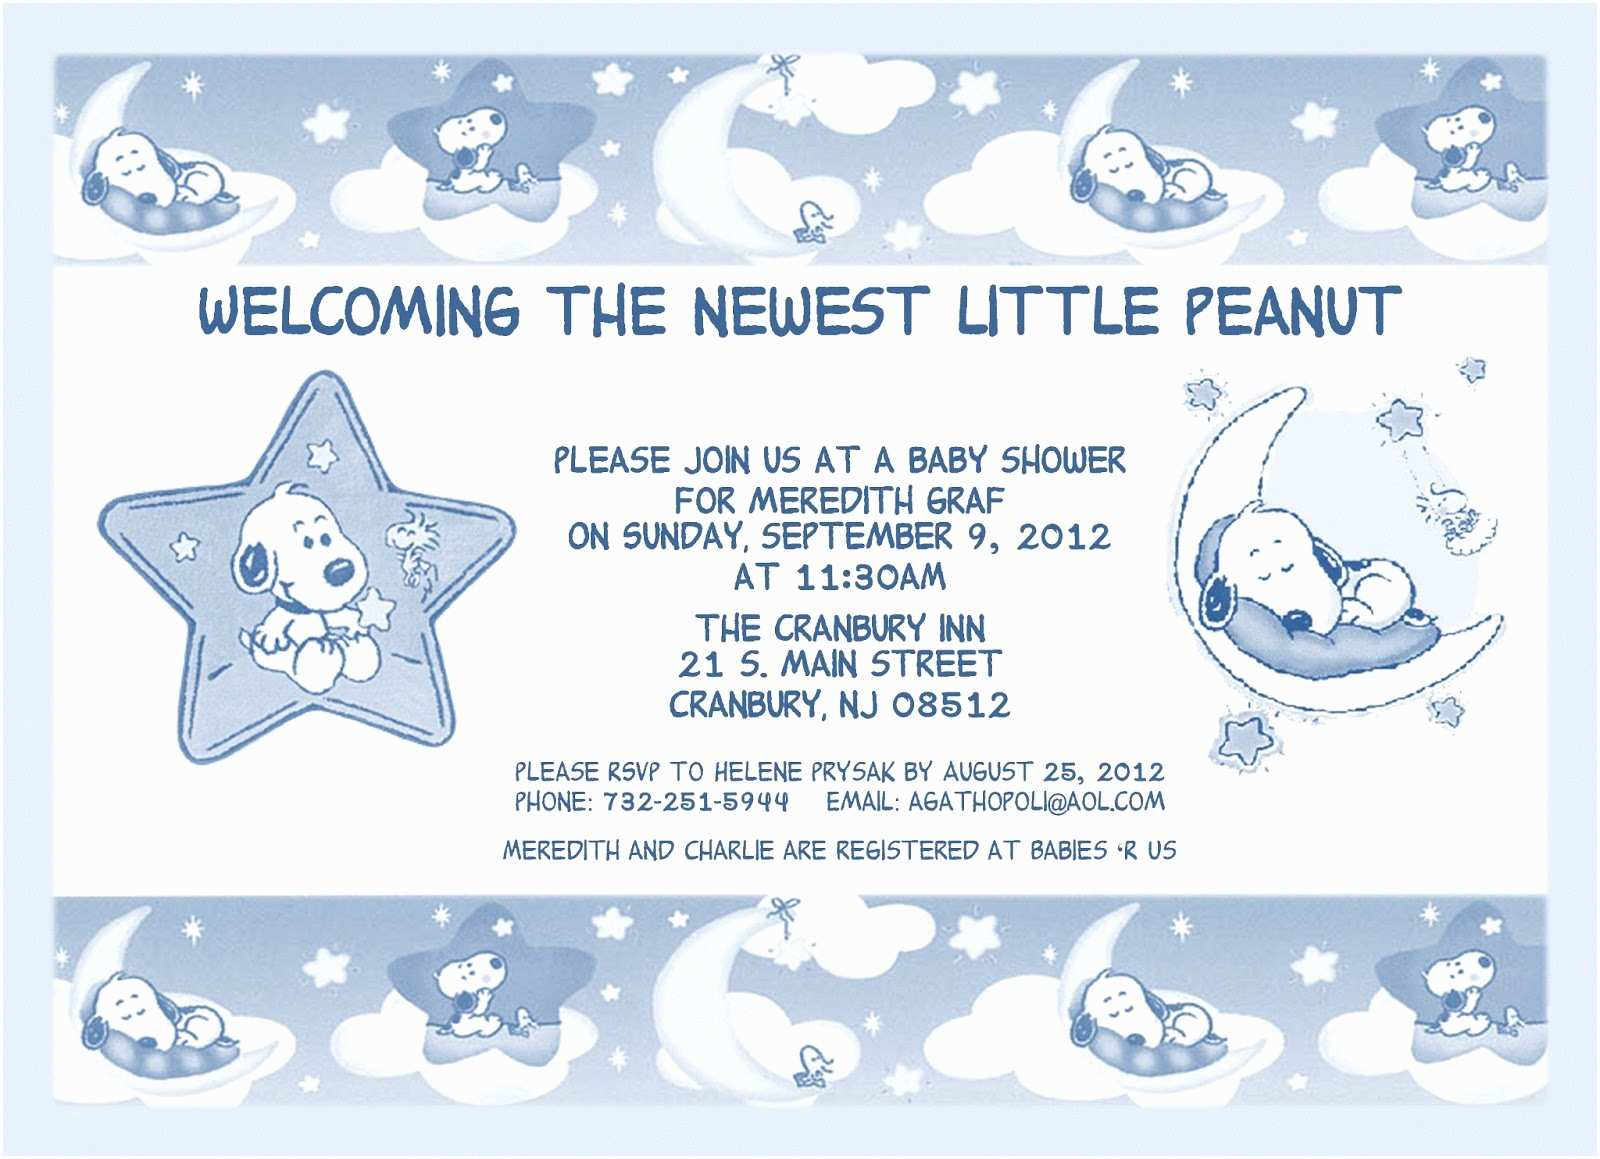 Snoopy Baby Shower Invitations the Cookie Crumbles Snoopy Baby Shower